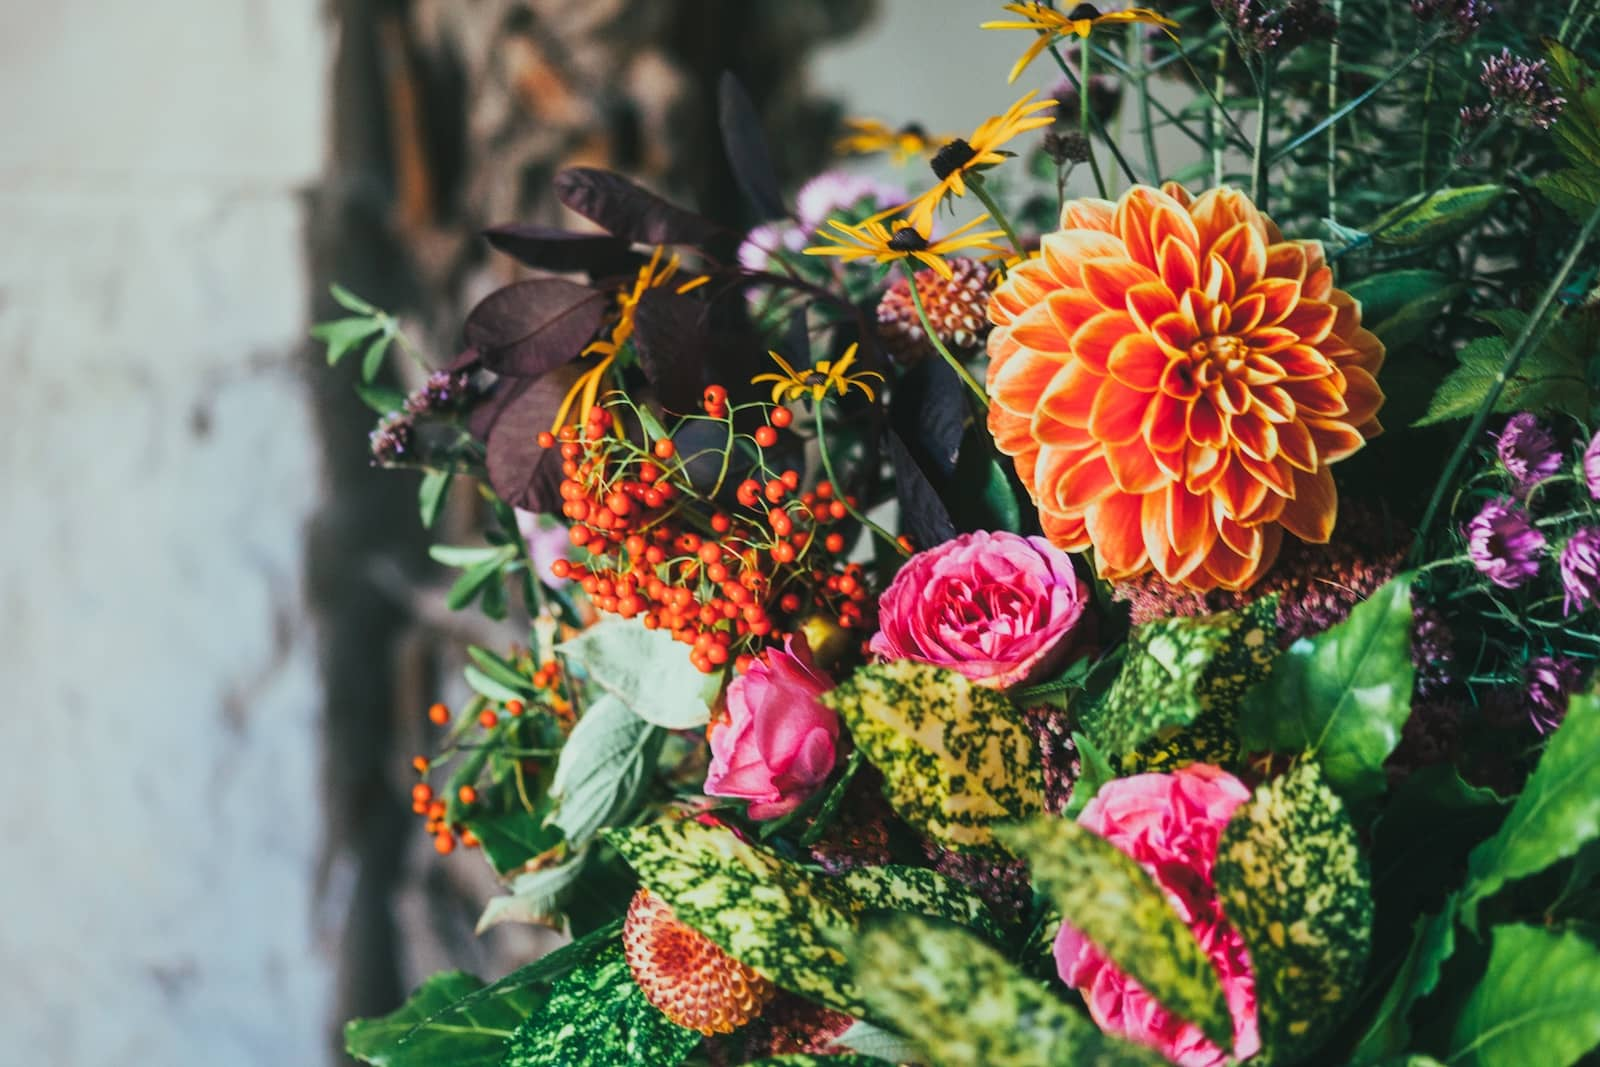 A bouquet of brightly coloured flowers of pink and orange